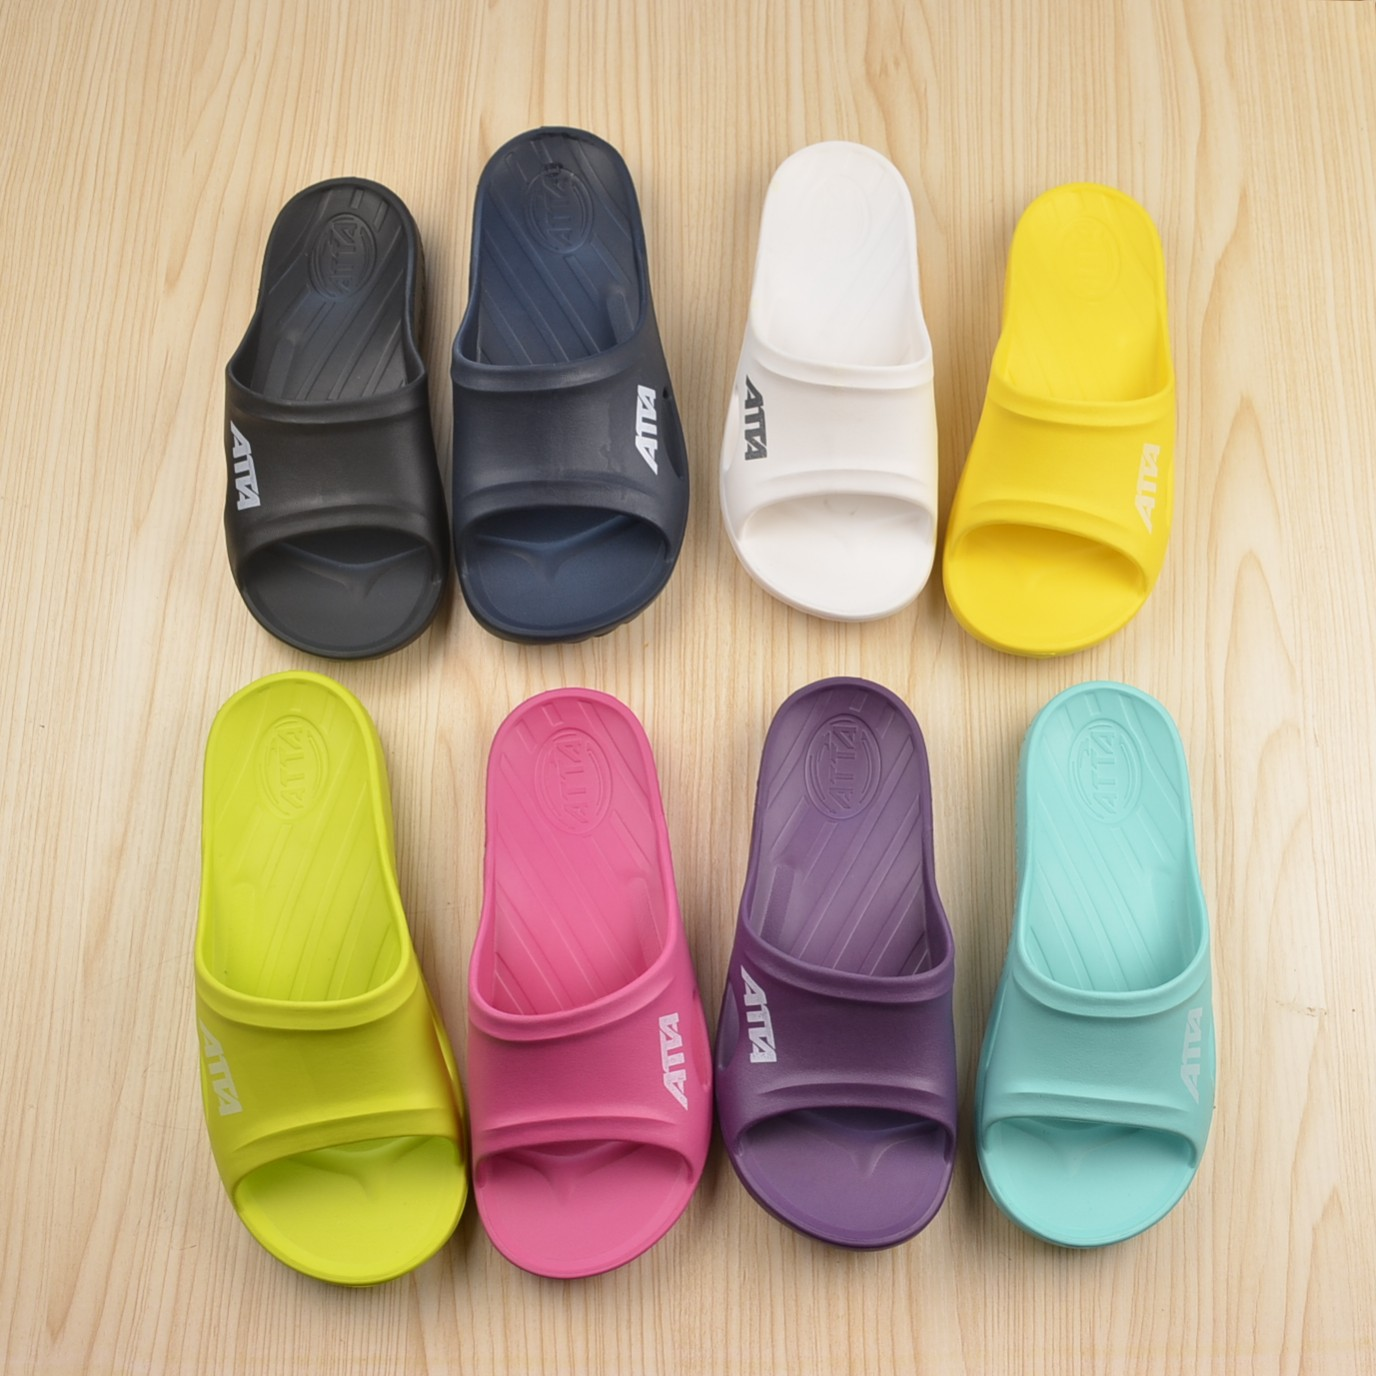 8f07902ebef6 Authentic ATTA Taiwan men and women couples non-slip soft bottom bath home  slippers one thick bottom bathroom shower slippers